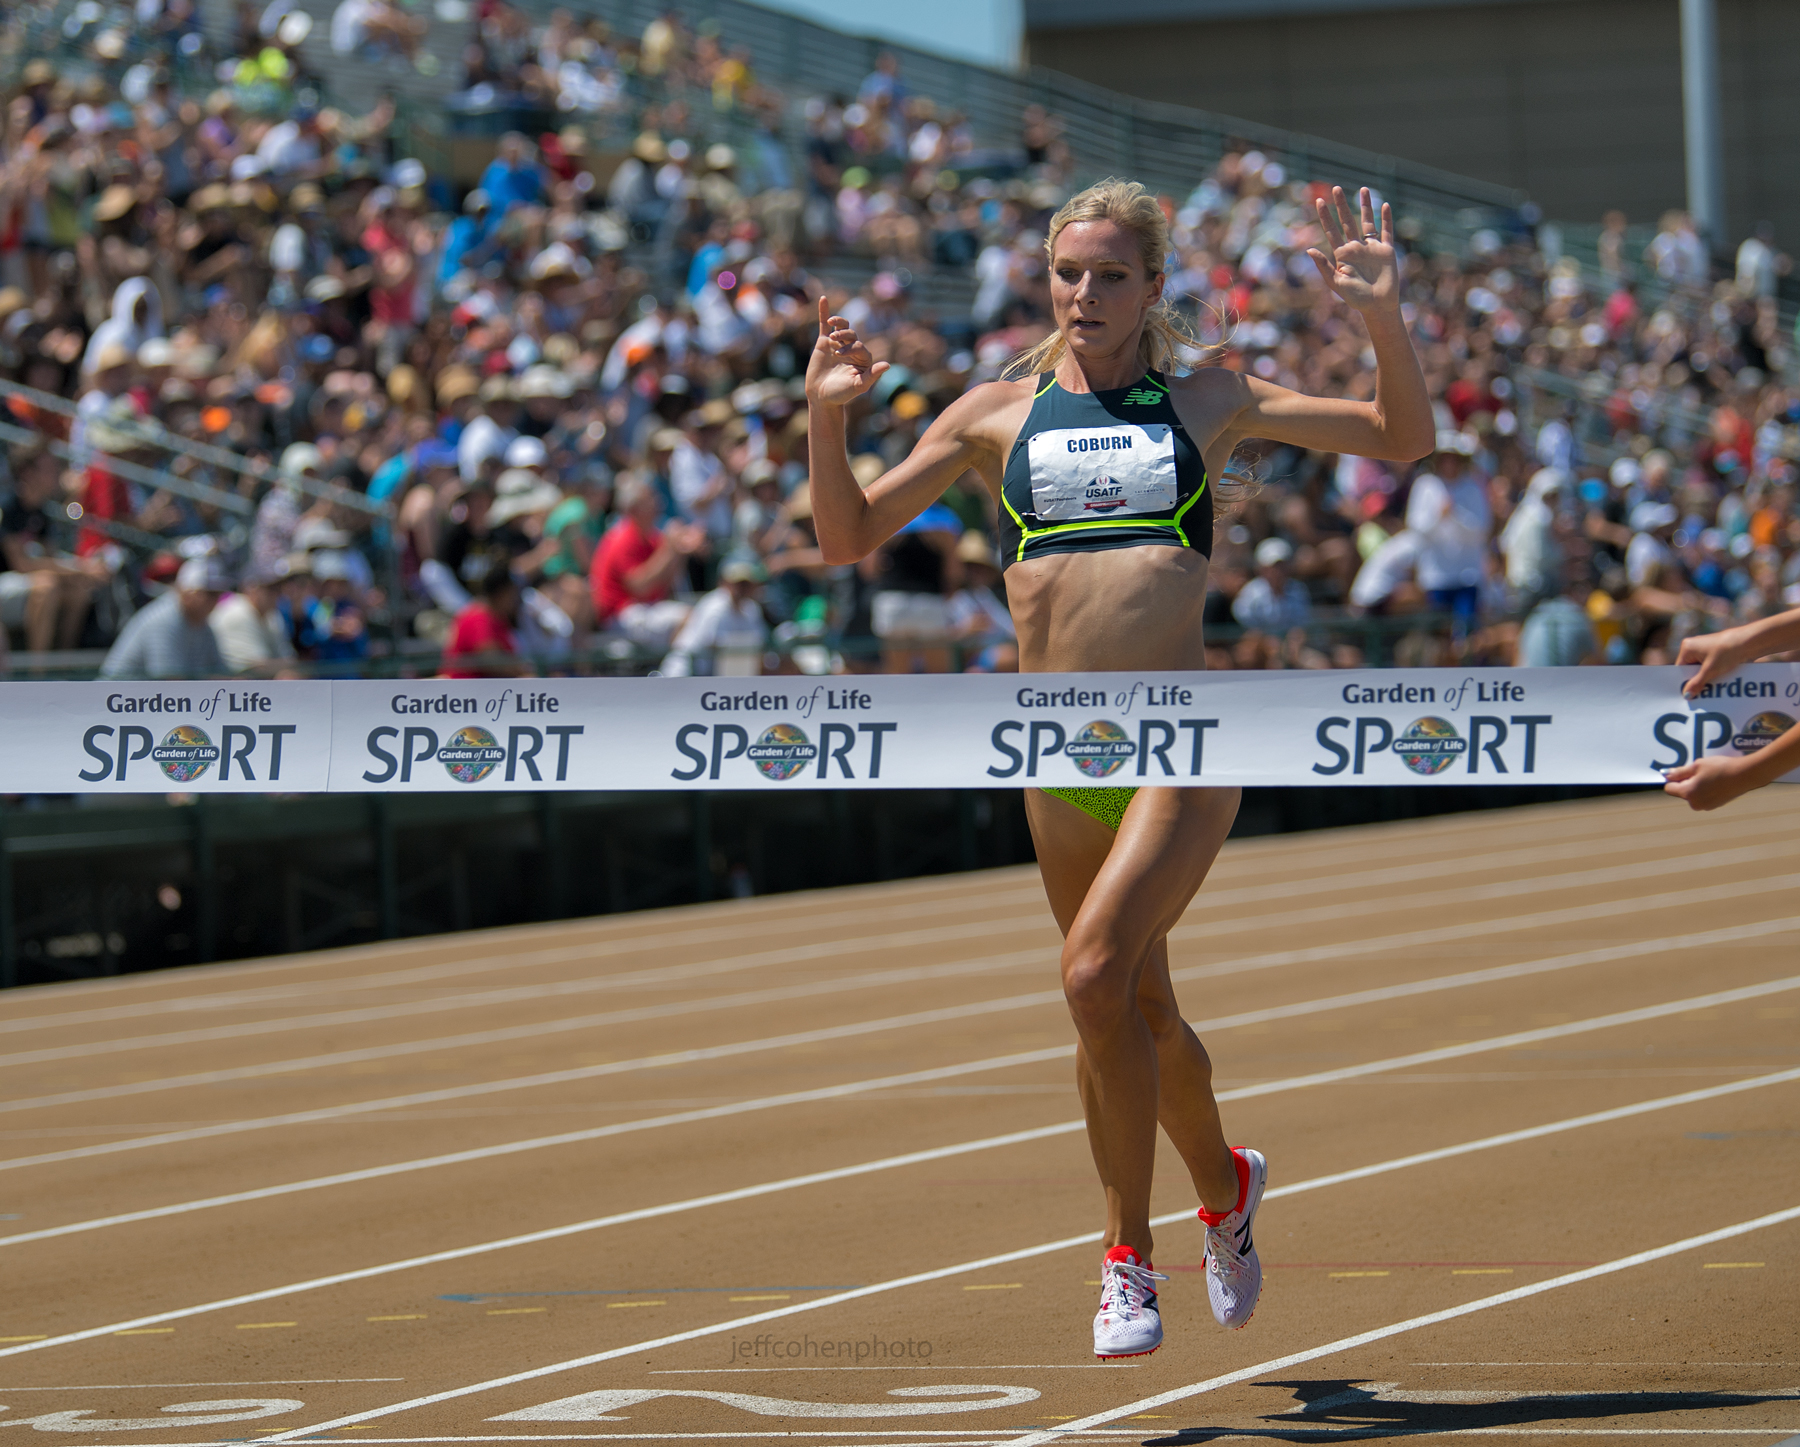 2017-usatf-outdoor-champs-day-3-coburn-steeplew-win--jeff-cohen-photo--4128-web.jpg